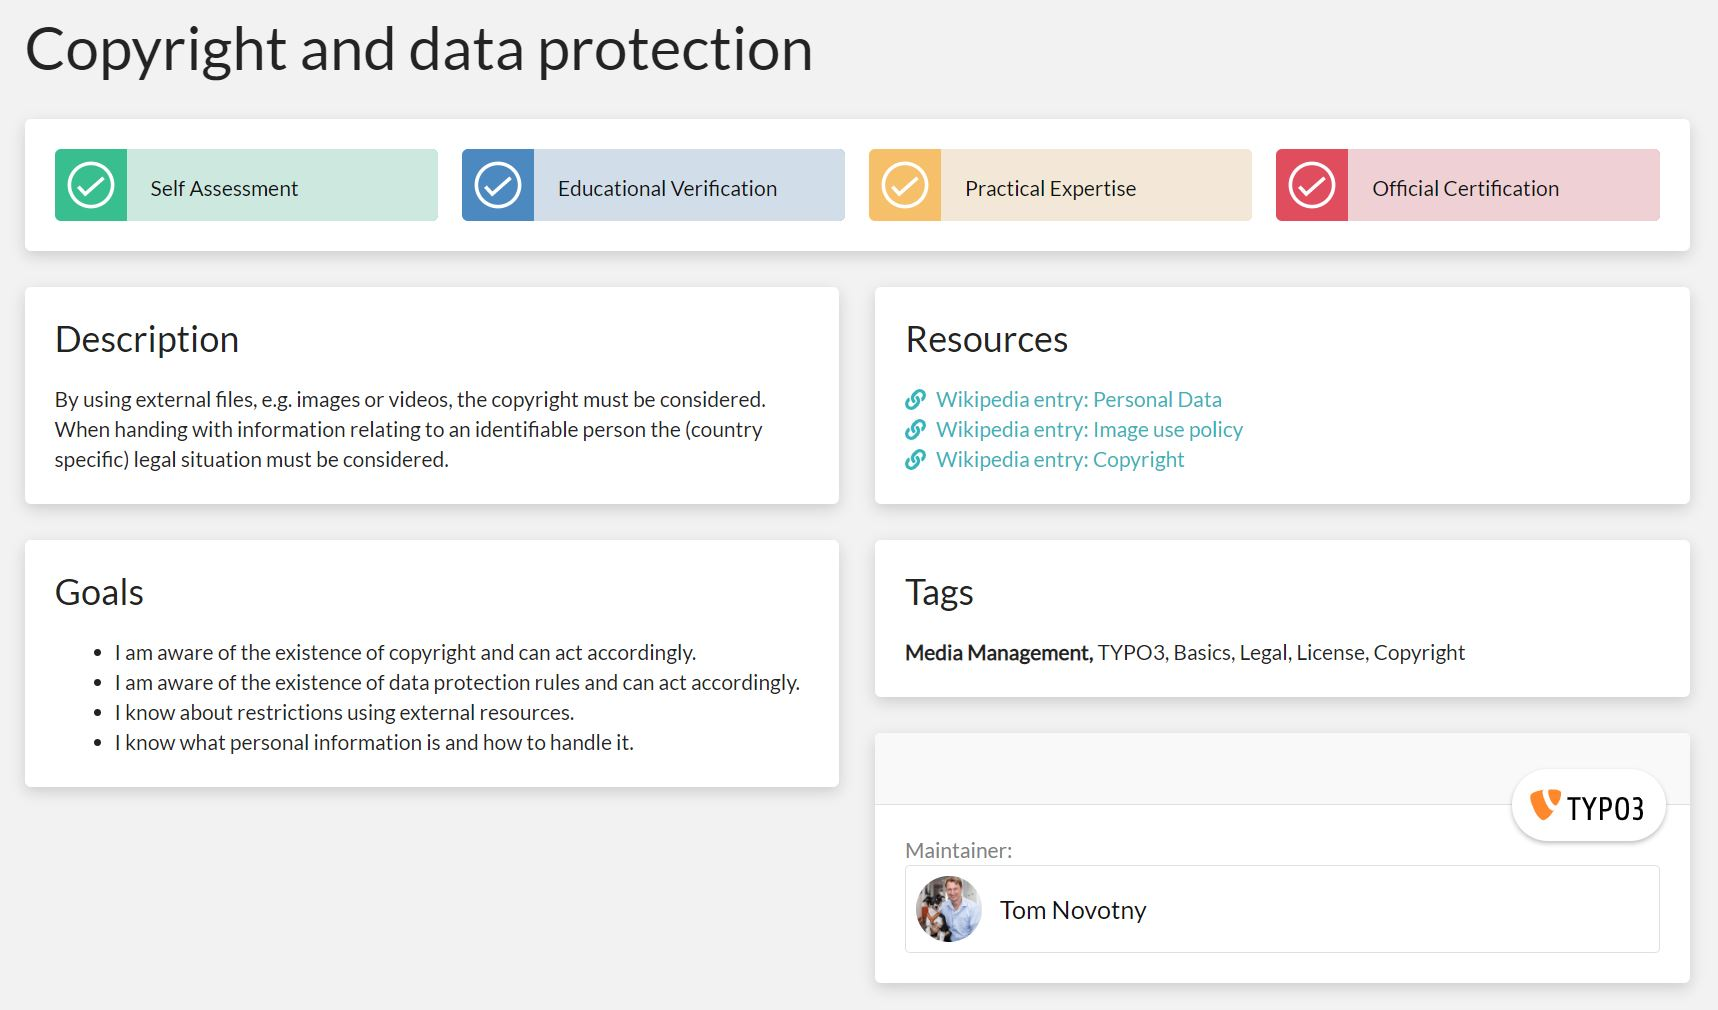 "A single skill view for the skill ""Copyright and Data Protection"". The view features the description, goals, resources, tags and maintainer, as well as the stakeholder verification buttons."